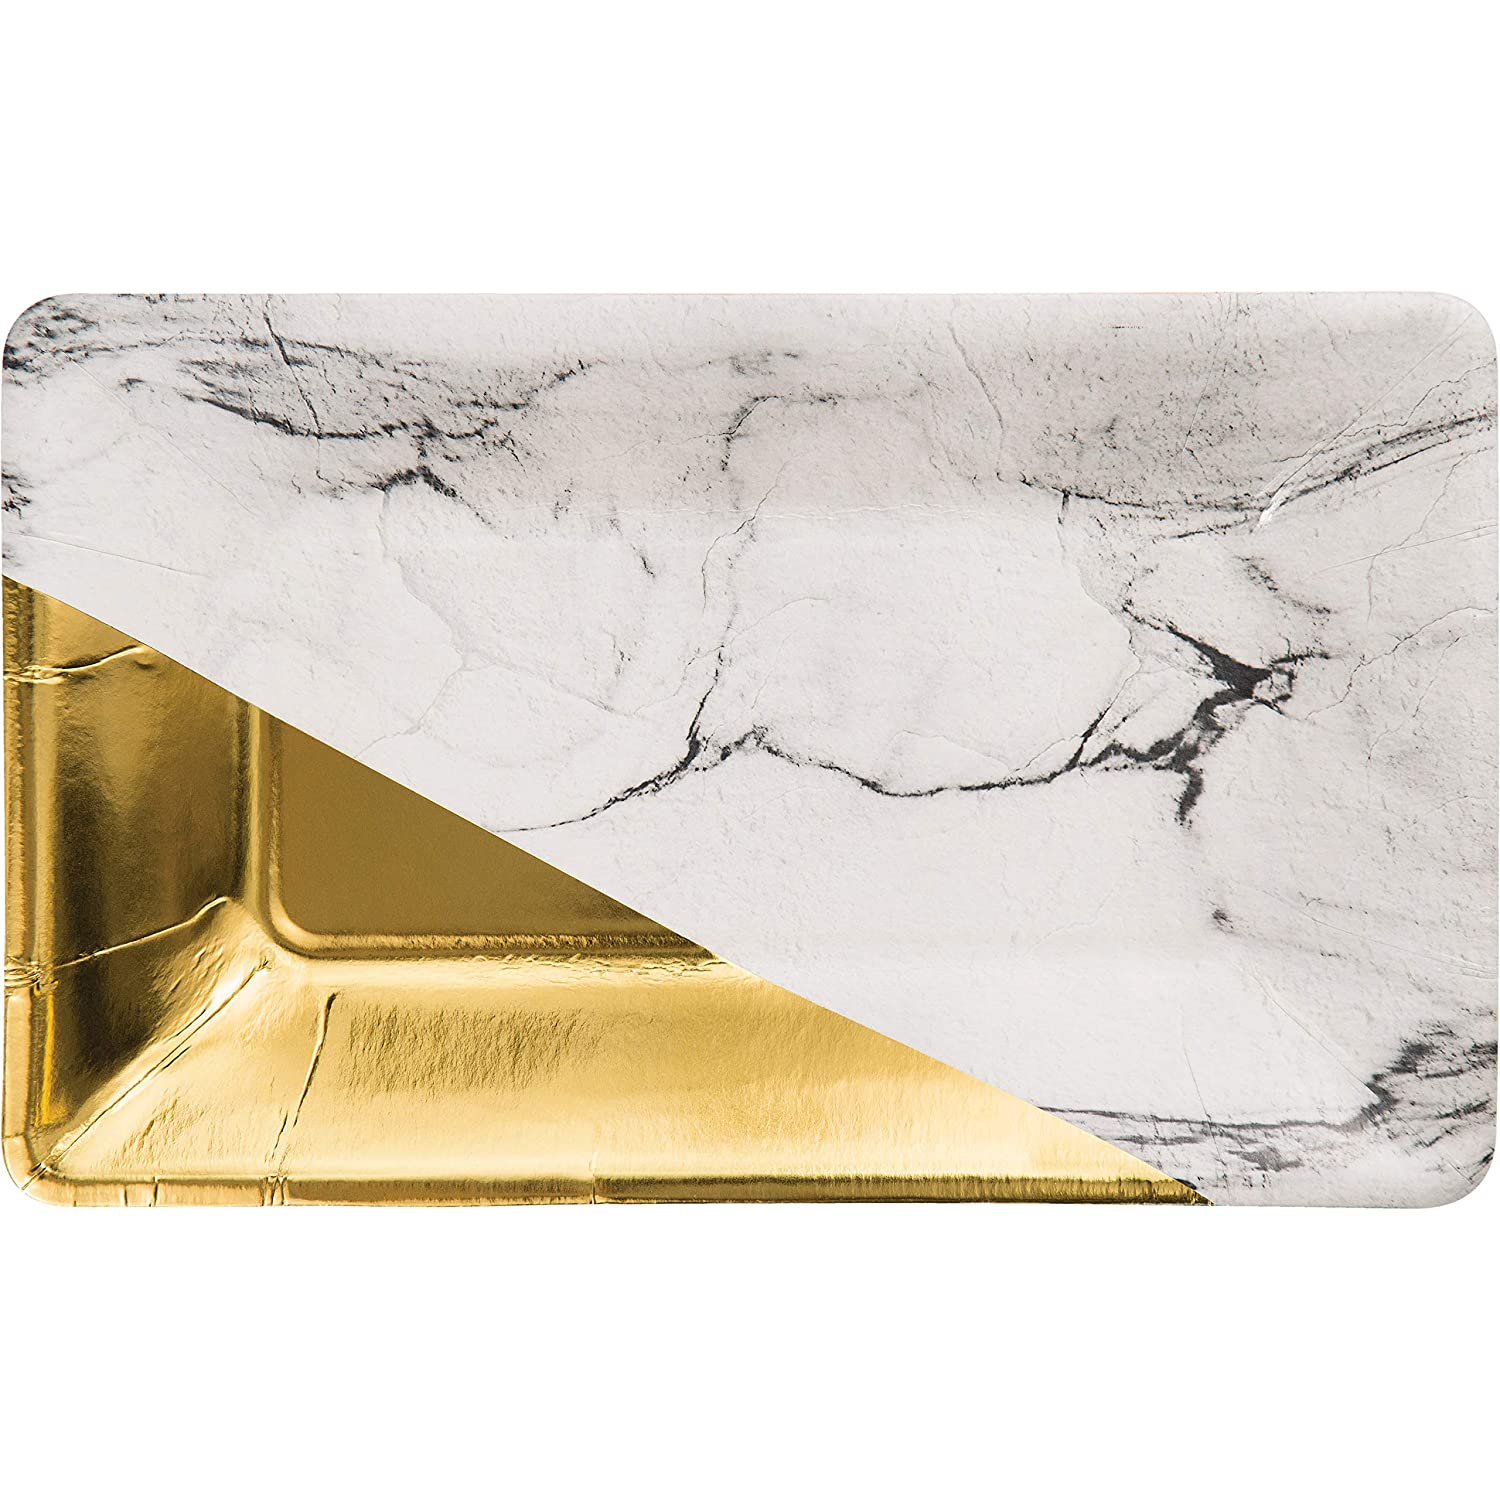 24 ct Marble and Gold Foil Appetizer Plates by Elise